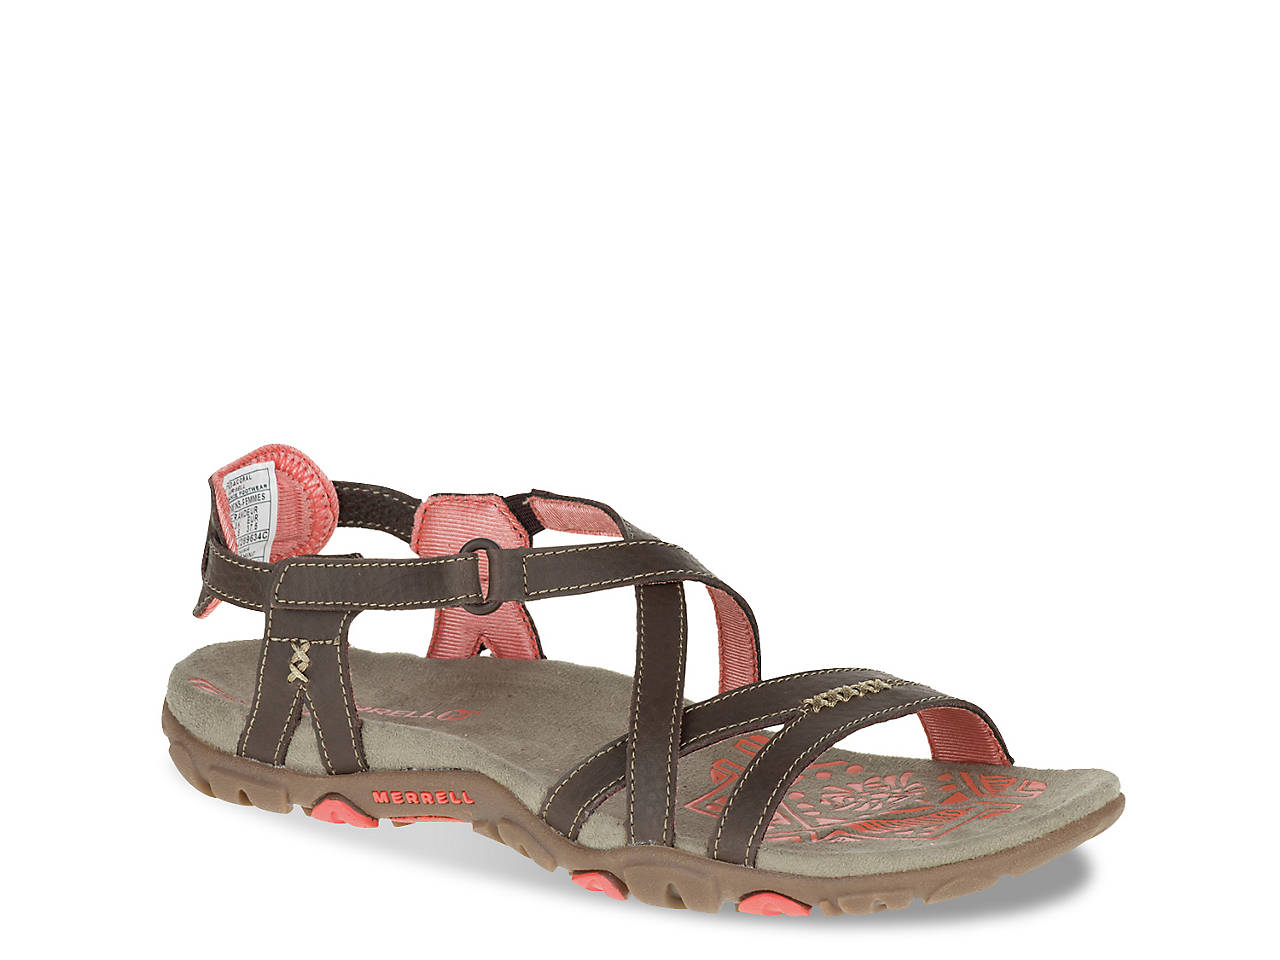 8b977959f5af Merrell Sandspur Rose Sandal Women s Shoes